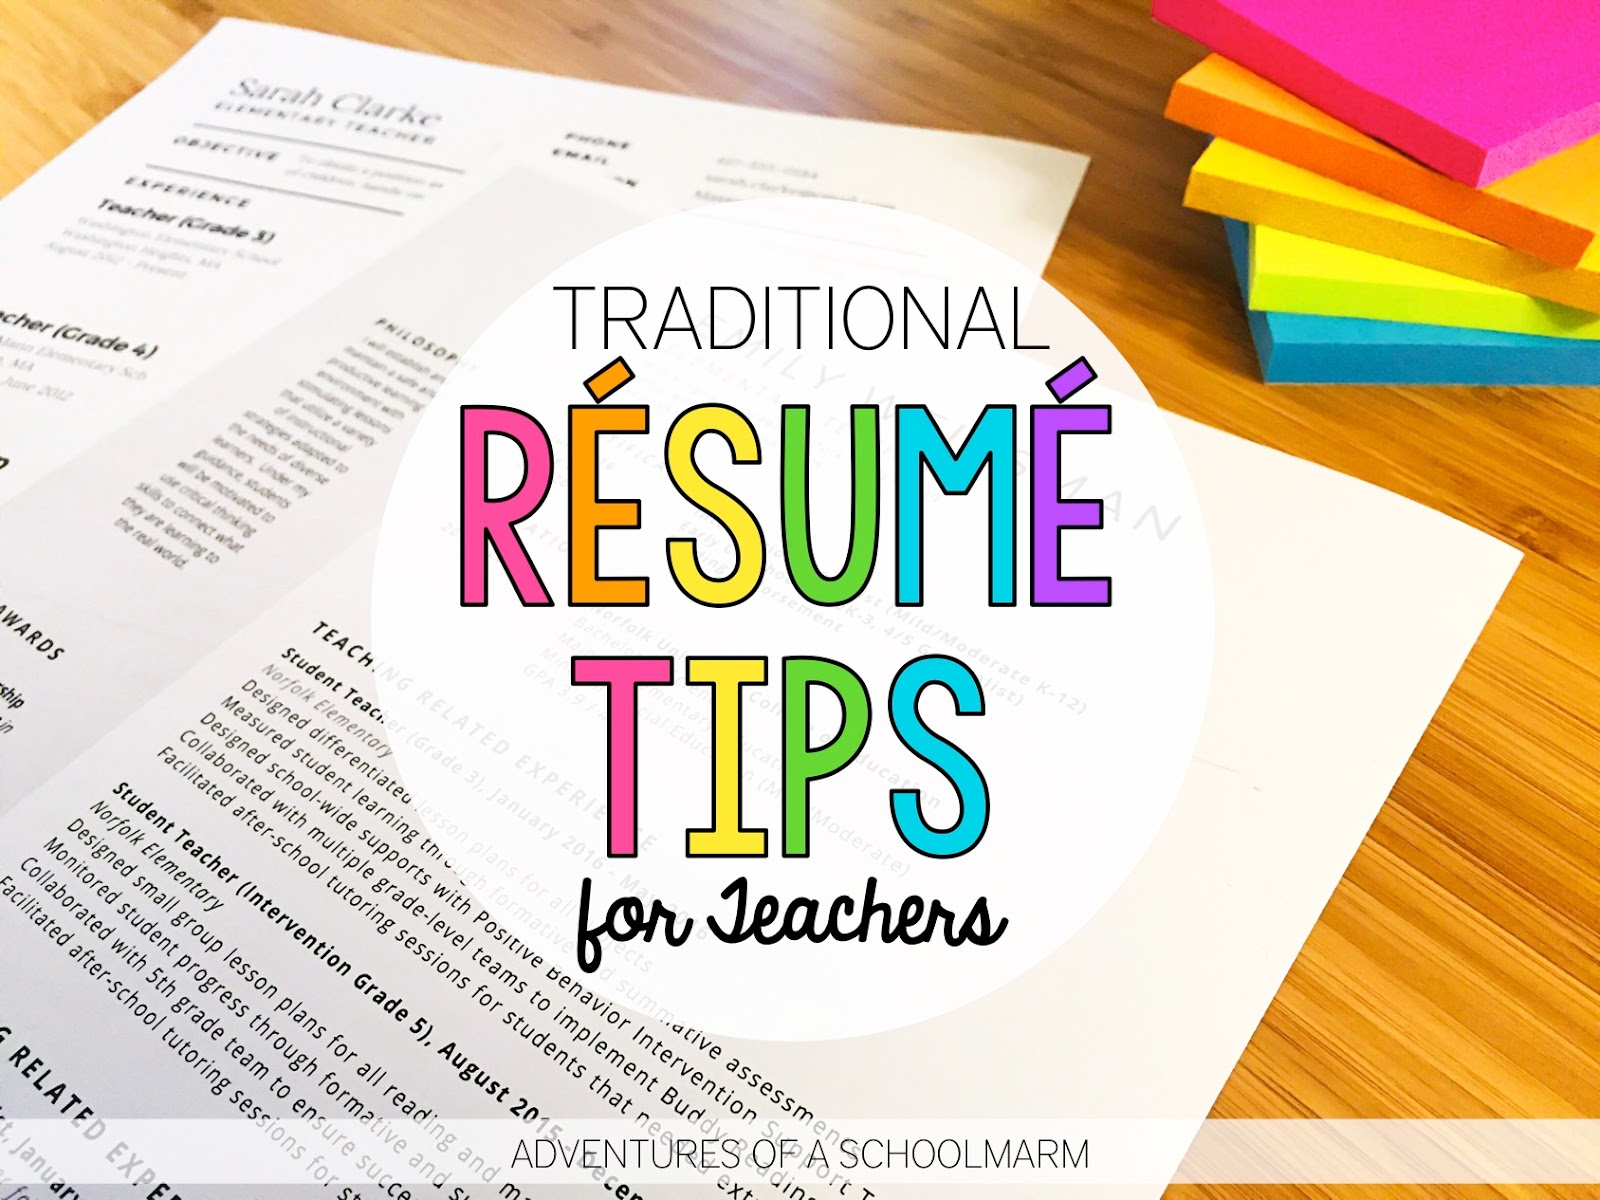 Attractive Do You Need Help Writing A Résumé For Teaching Jobs? This Post Will Walk You